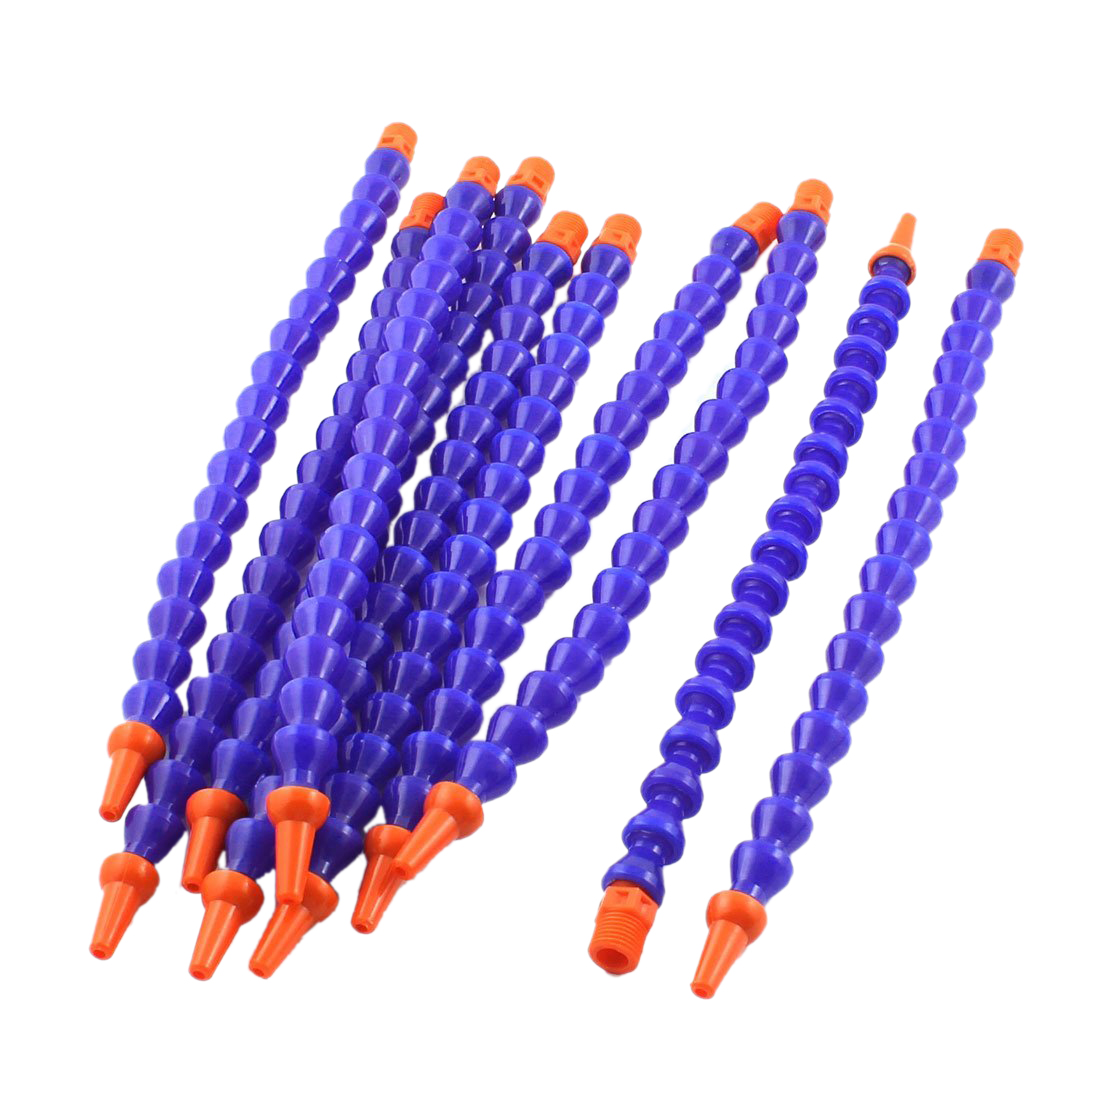 10PCS Round Nozzle 1/4PT Flexible Oil Coolant Pipe Hose Blue Orange 1 pc 1 2 400mm flexible adjustable water oil coolant pipe hose w round nozzle switch